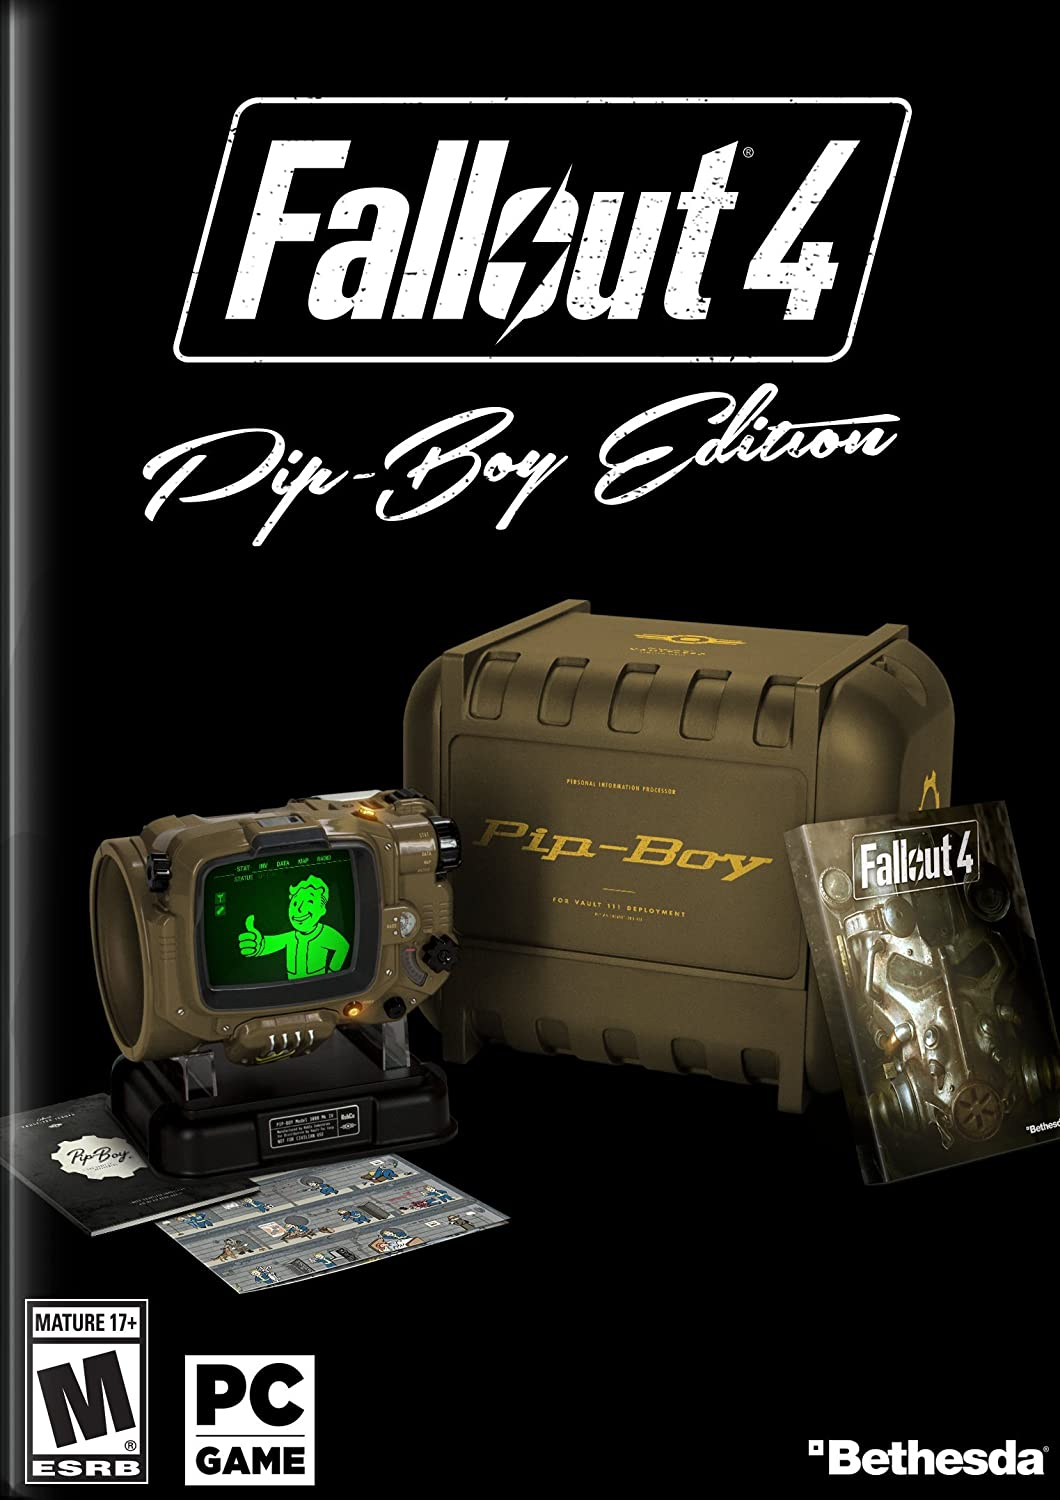 Fallout 4 - Pip-Boy Edition - PC by Bethesda: Amazon.es: Videojuegos